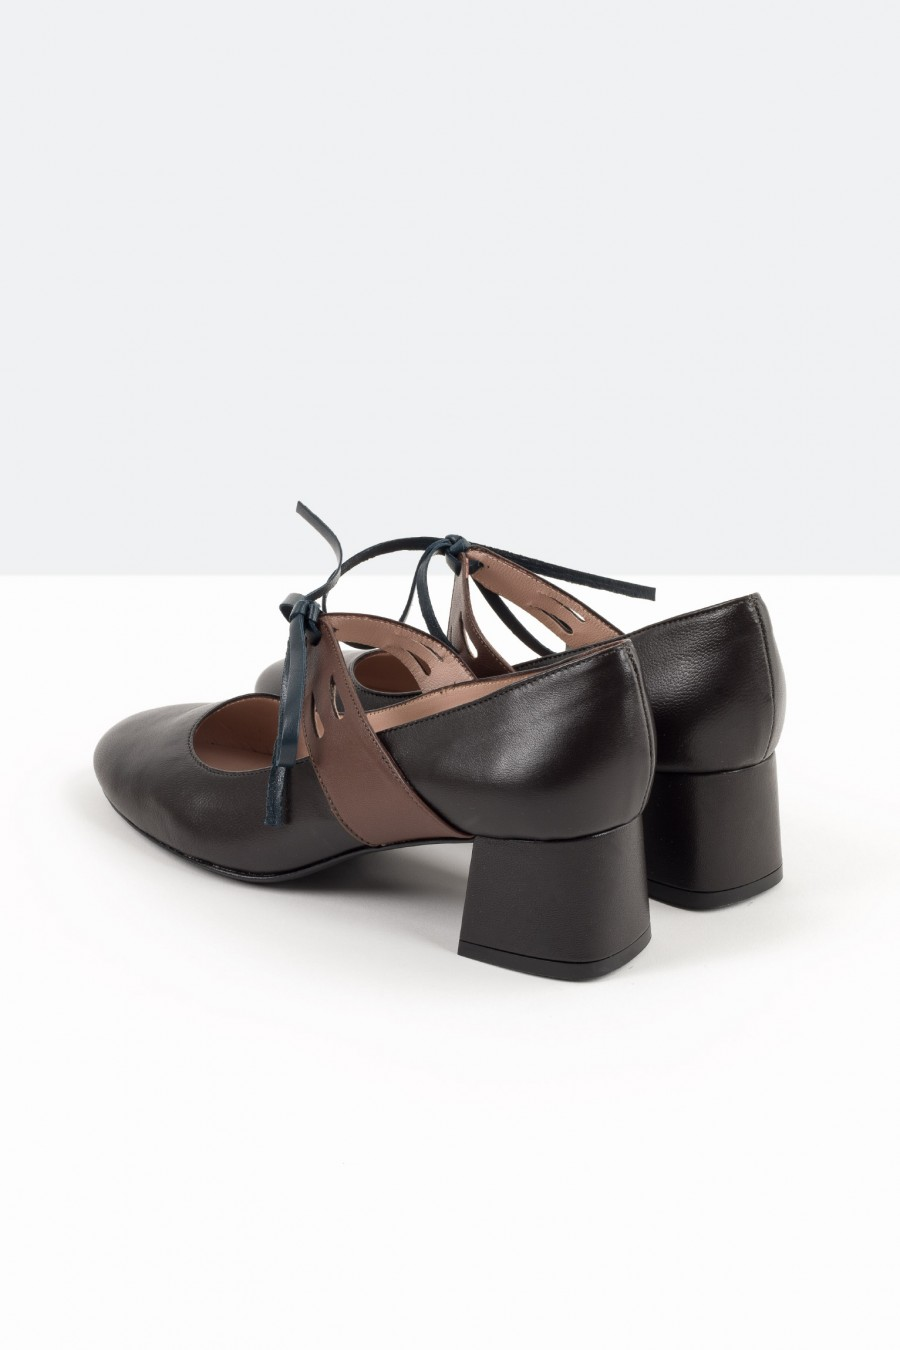 Black bebè shoes with brown leather straps